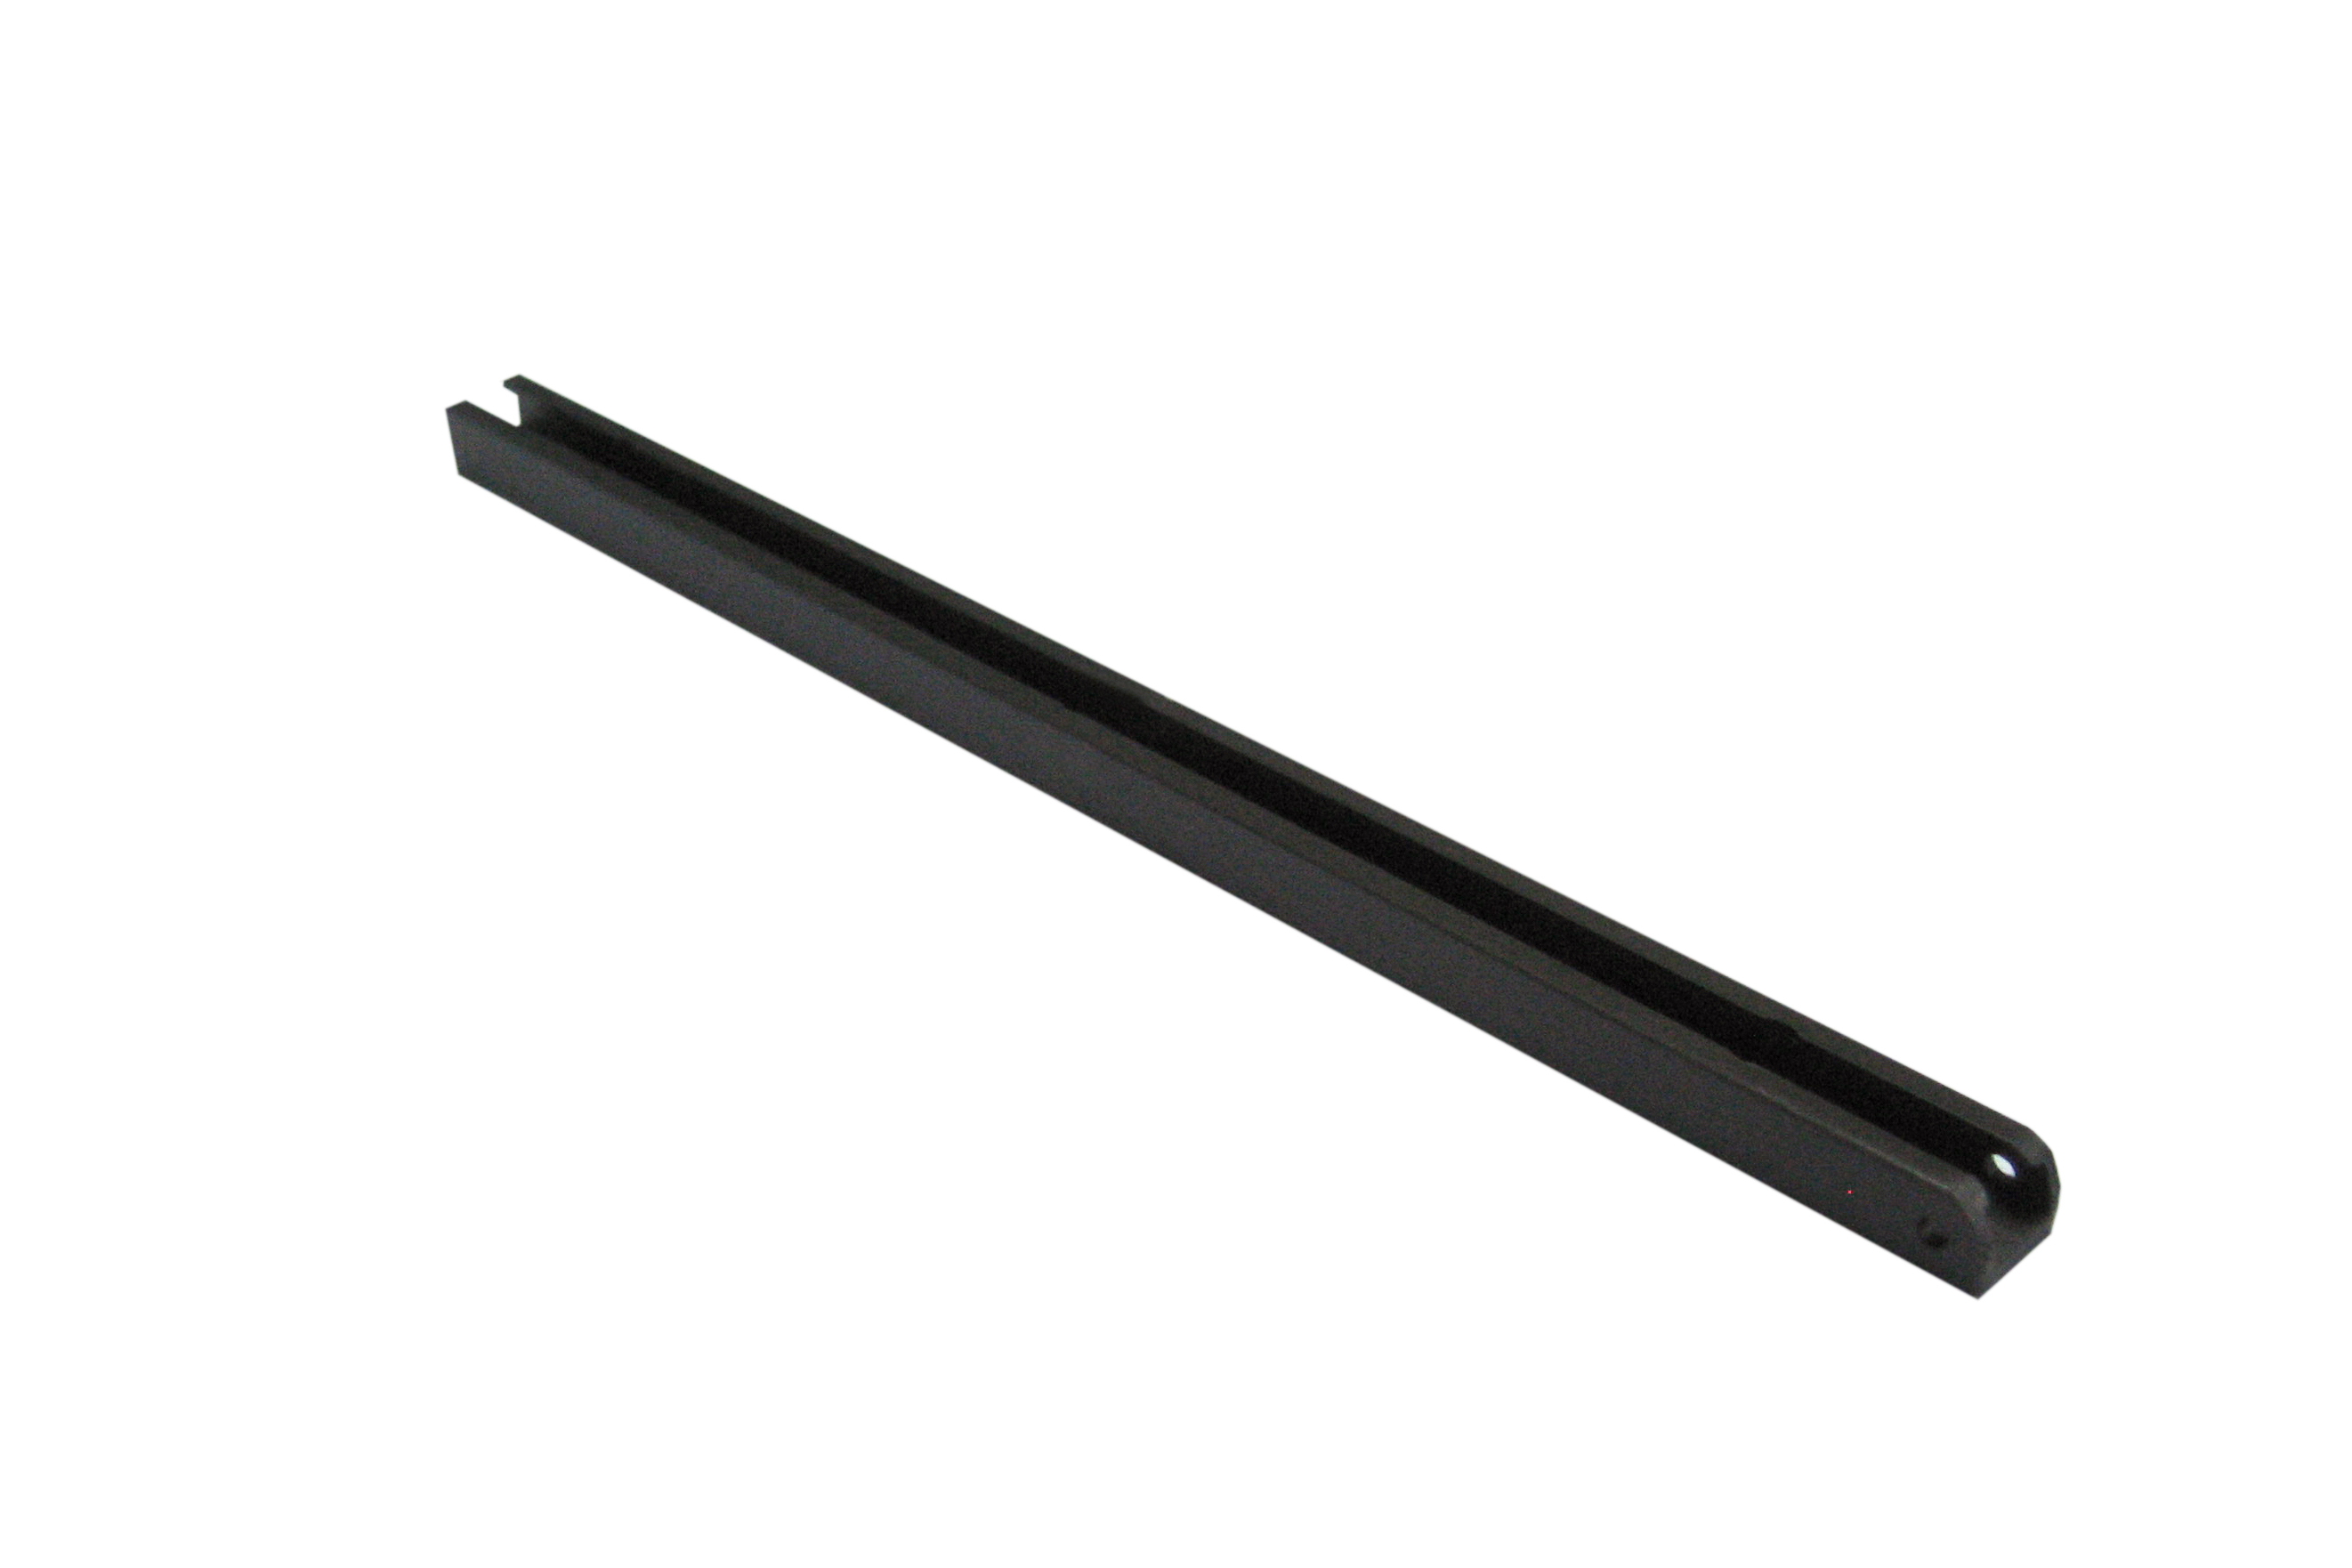 Footboard Keel Rail - (Surf Skis) - 250mm